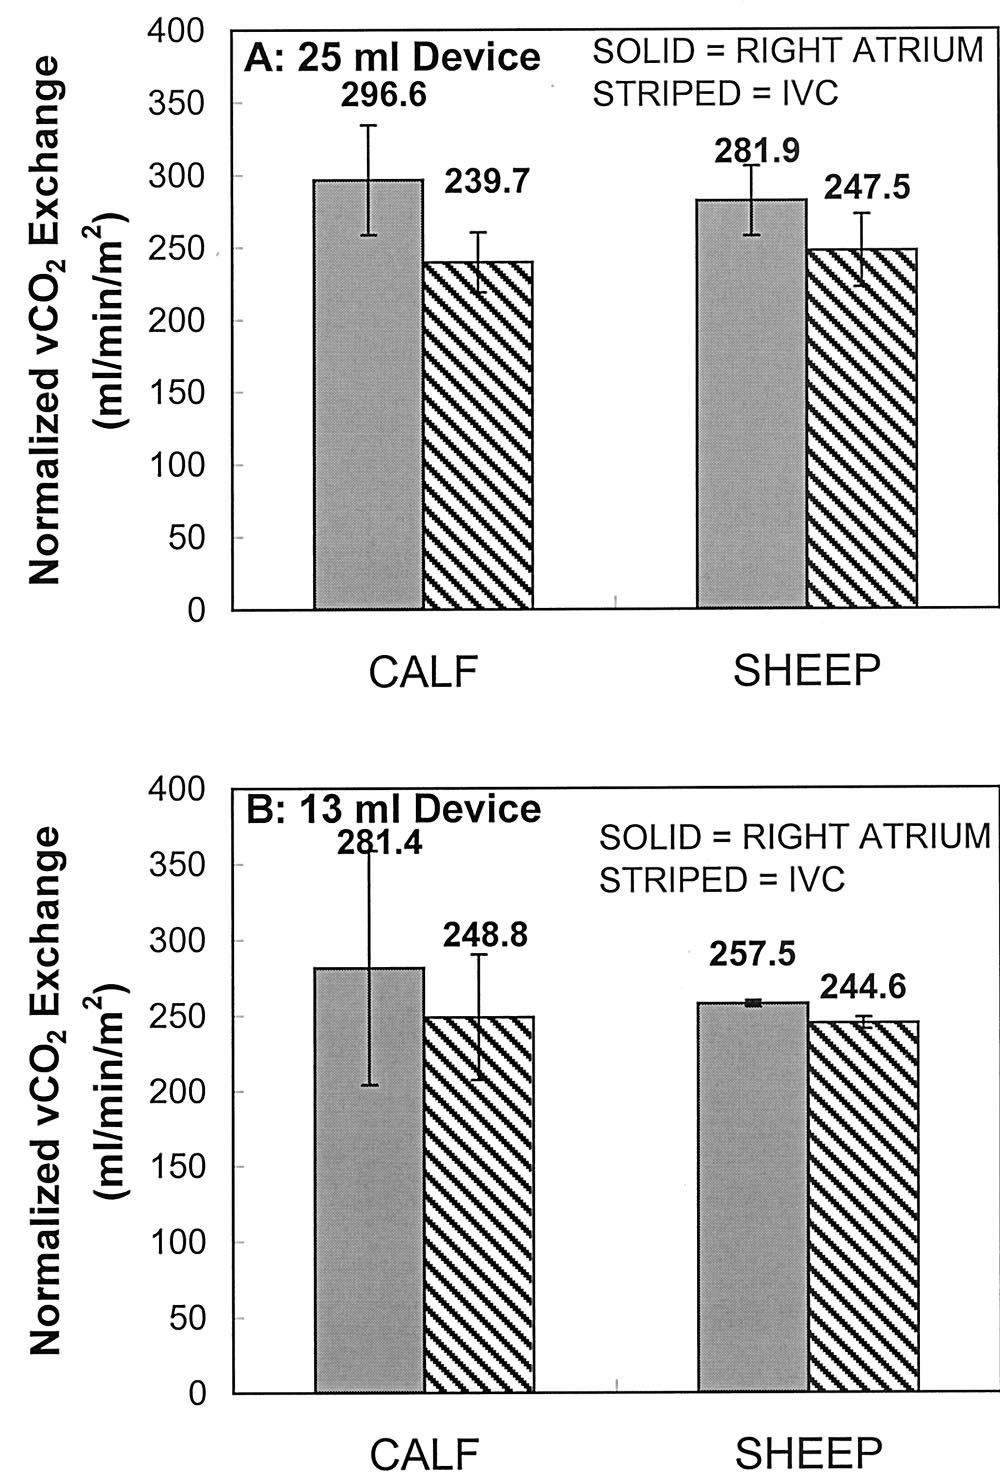 RESPIRATORY CATHETER IN CALVES VERSUS SHEEP 373 Figure 2. Average maximum CO 2 removal rate (vco 2 ) normalized to a CO 2 partial pressure (pco 2 ) of 50 mm Hg for calf and sheep models.